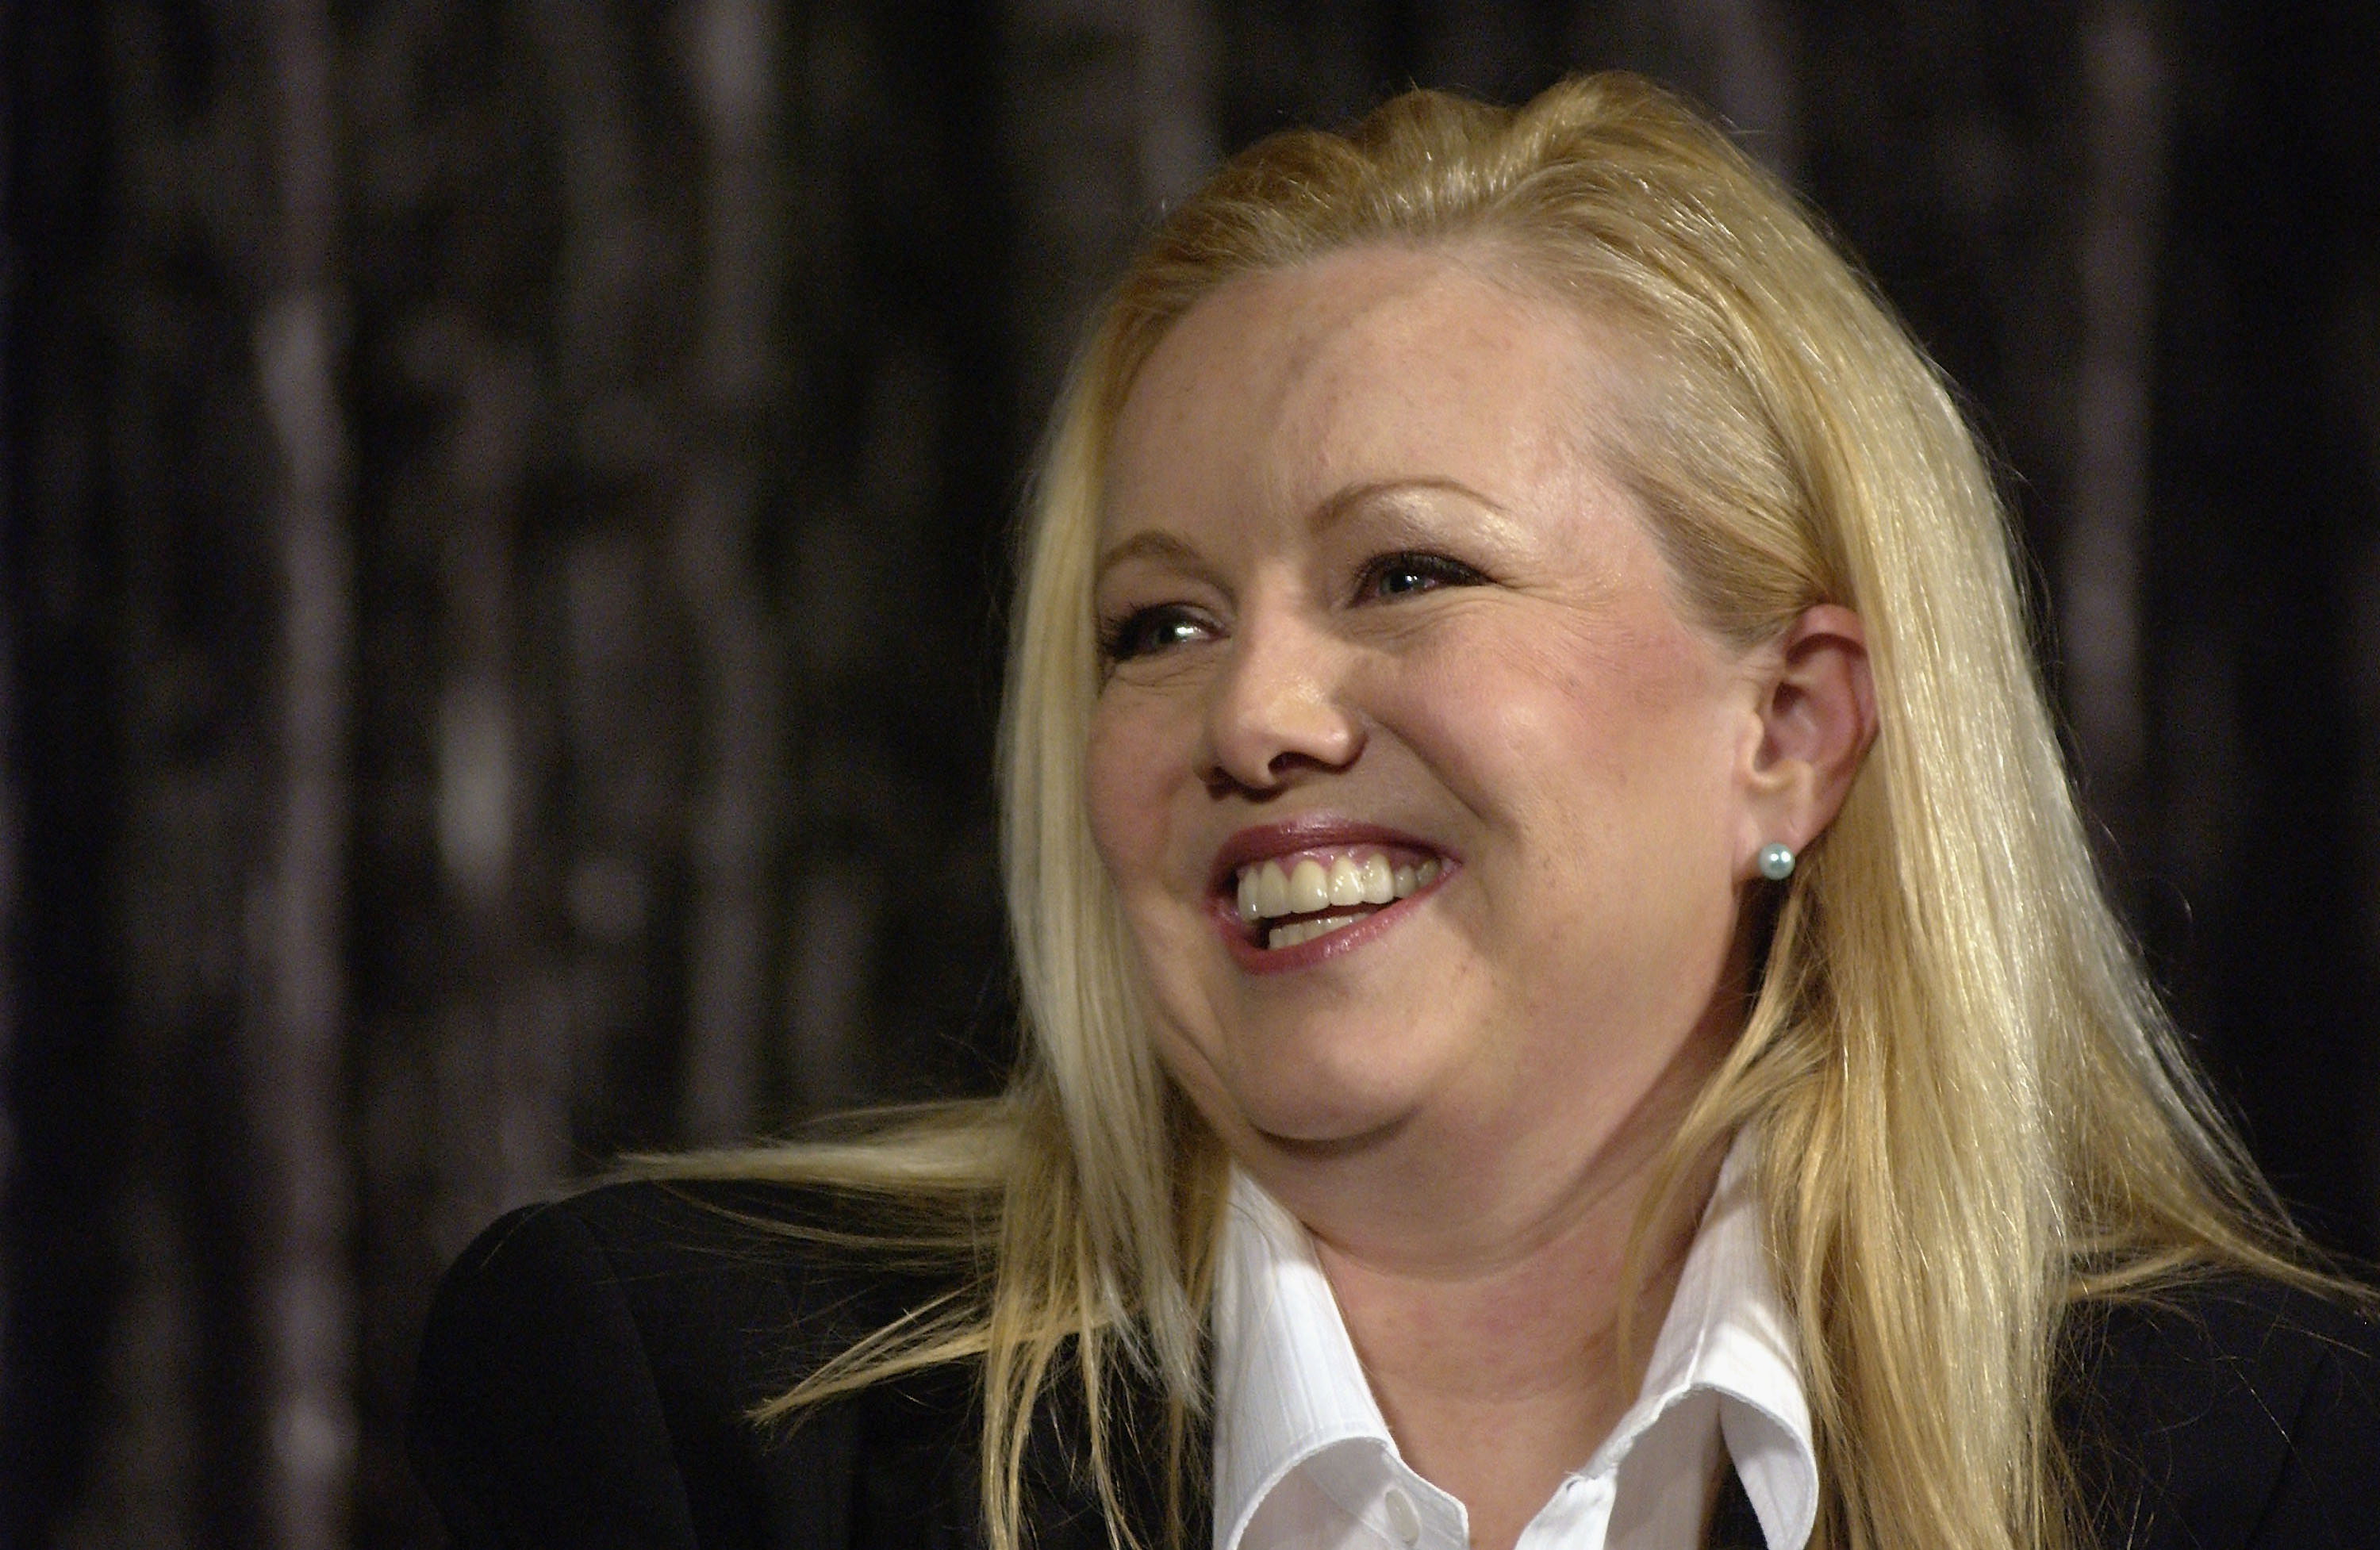 Director Susan Stroman participates in a Q&A session at the Variety Screening Series of  The Producers  at the Arclight Theaters on December 13, 2005 in Hollywood, California.